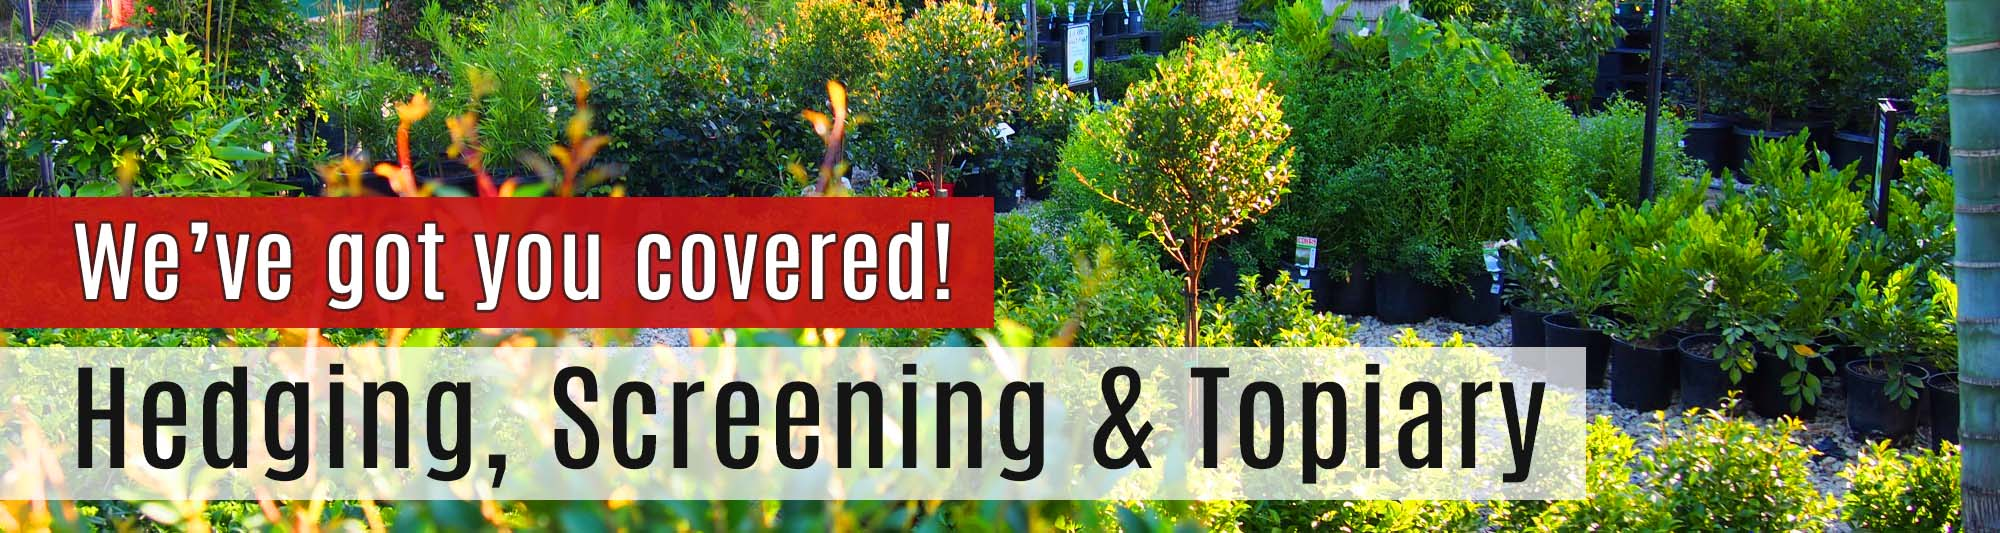 Screening & Hedging Plants